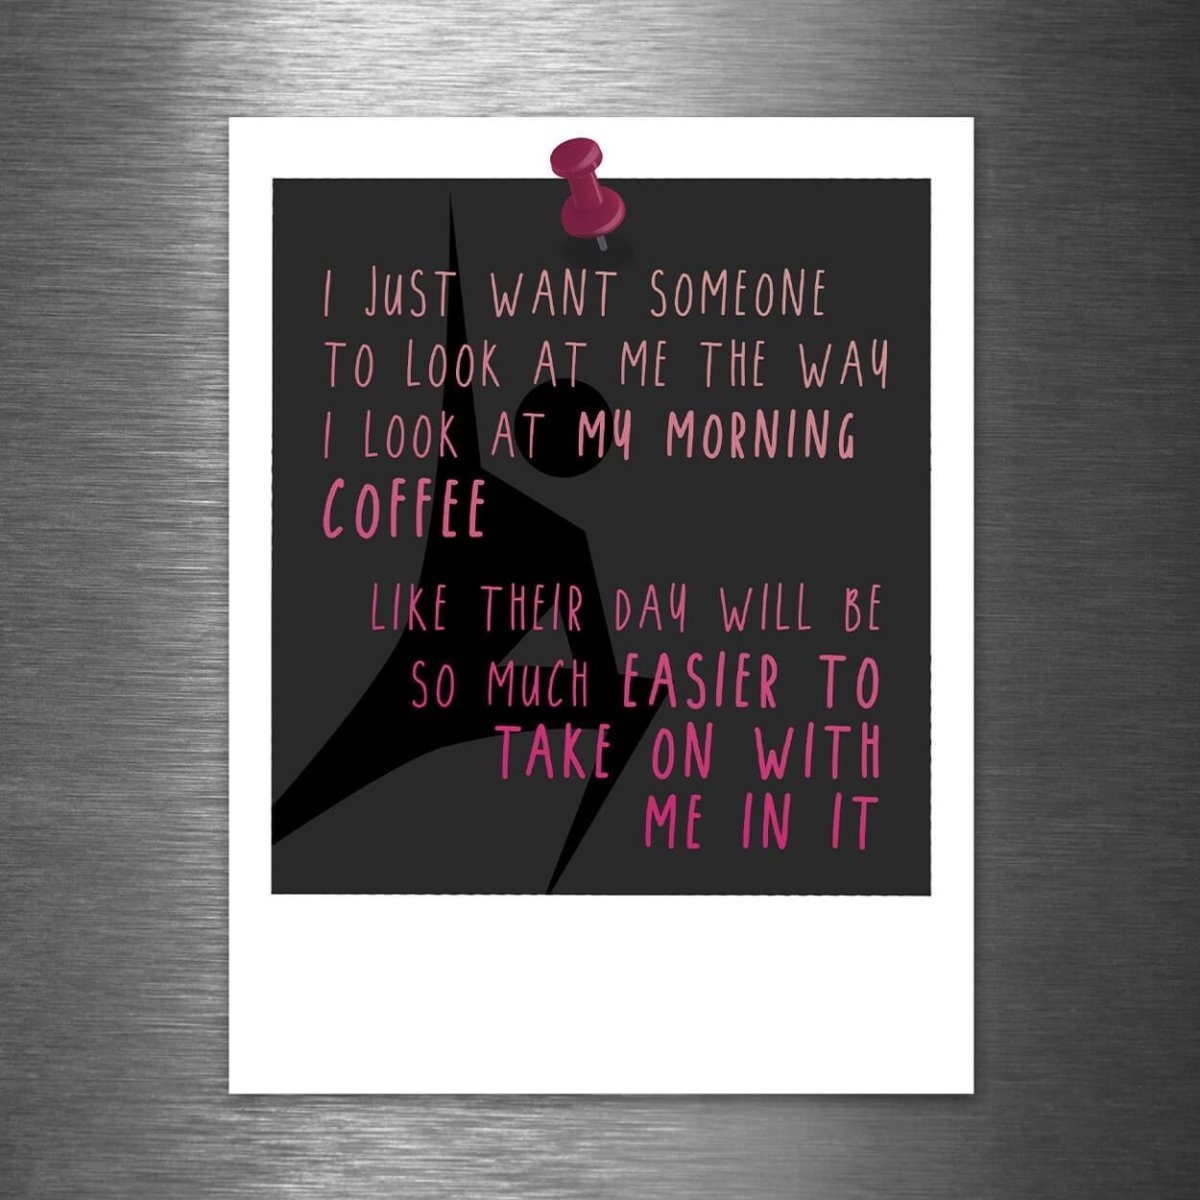 I Want Someone to Look at Me the Way They Look at Their Coffee - Like Their Day Will Be So Much Better With Me In It - Vinyl Sticker - Dan Pearce Sticker Shop